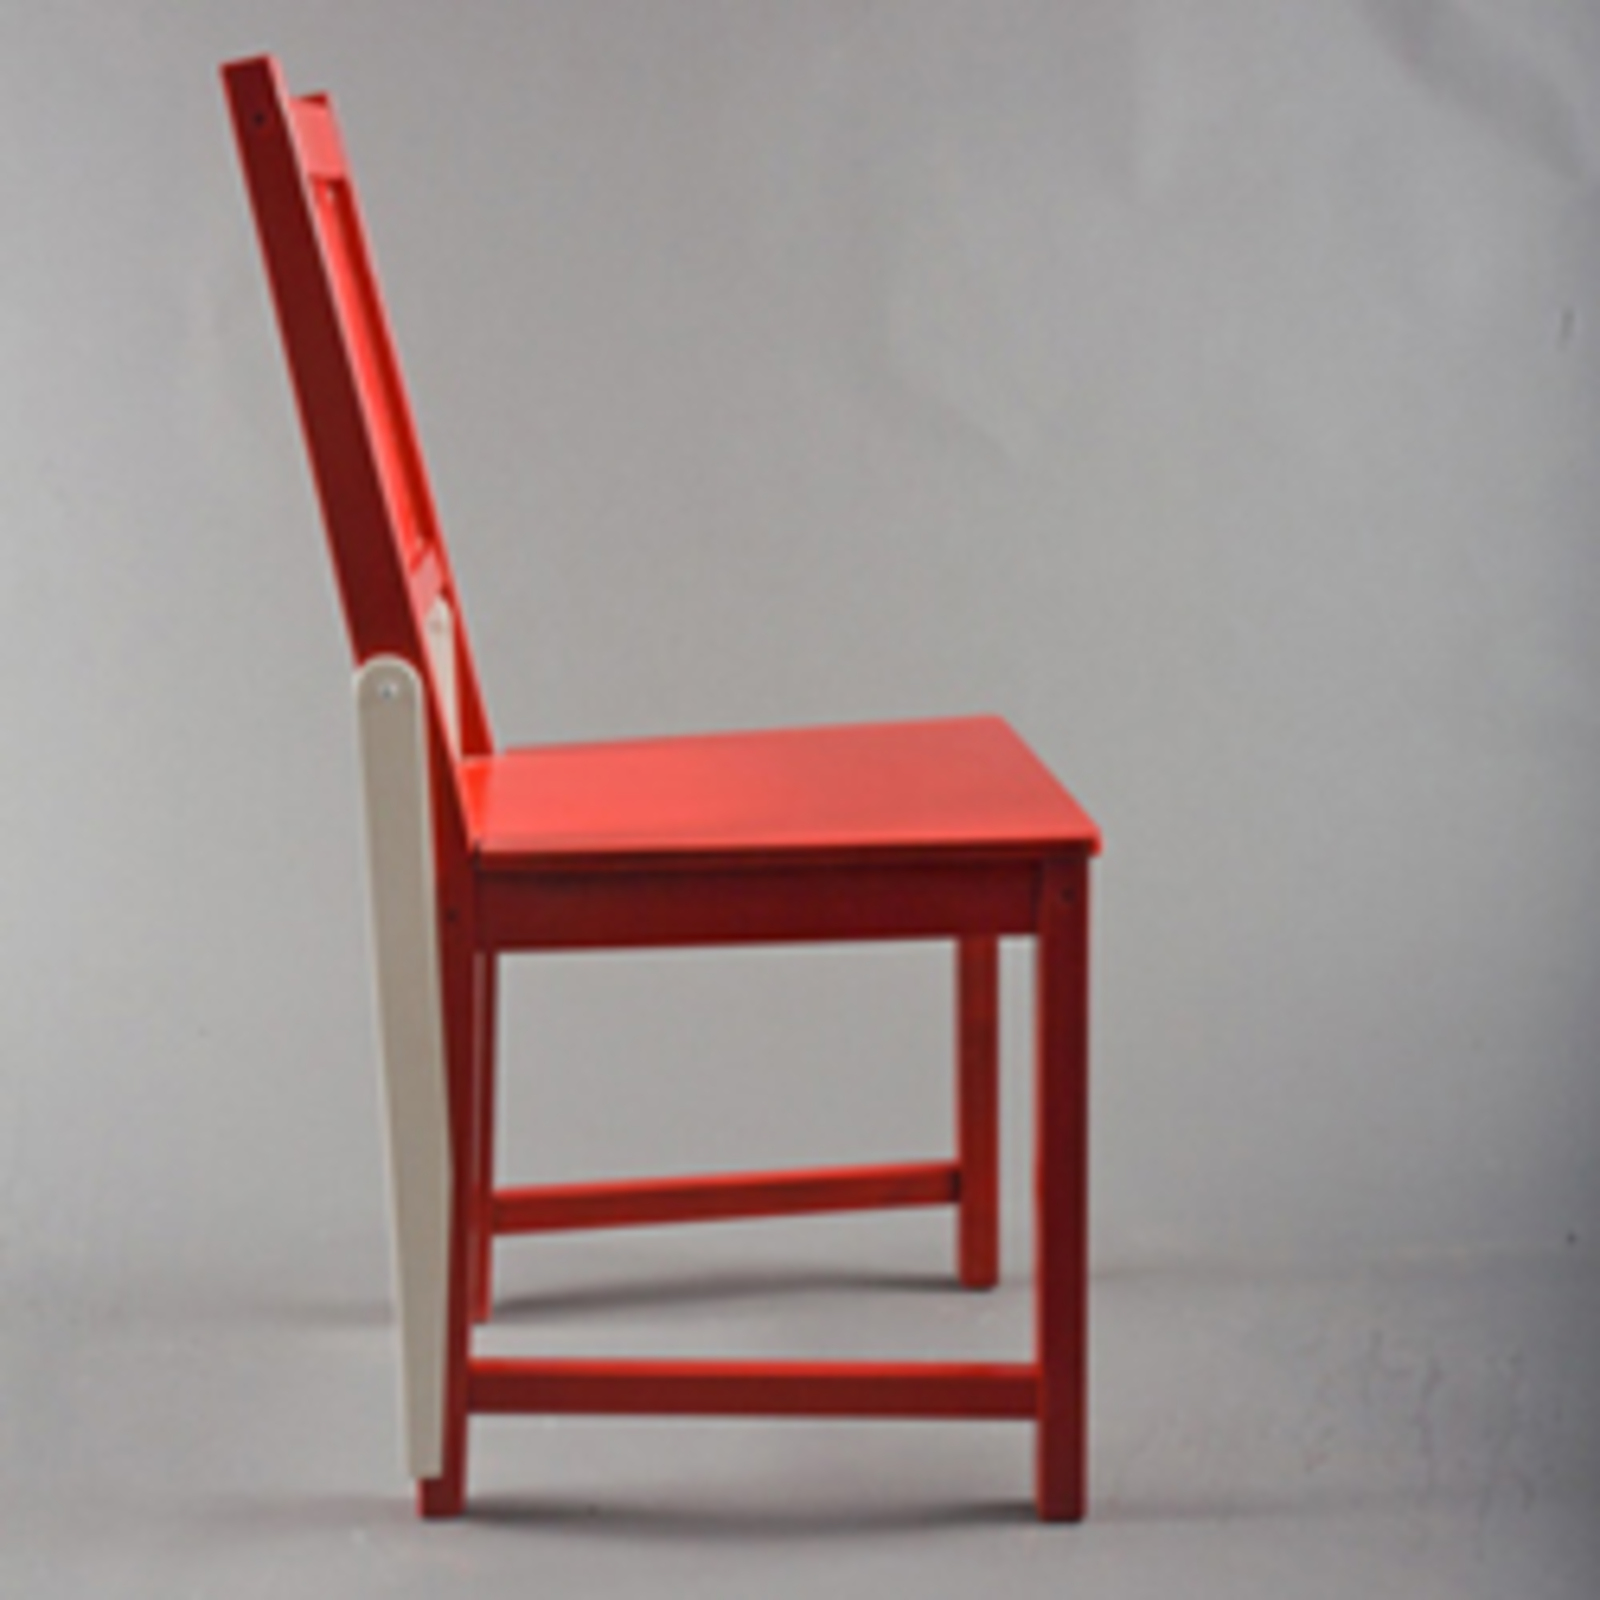 Attitude Chair by Deger Cengiz Cool Hunting